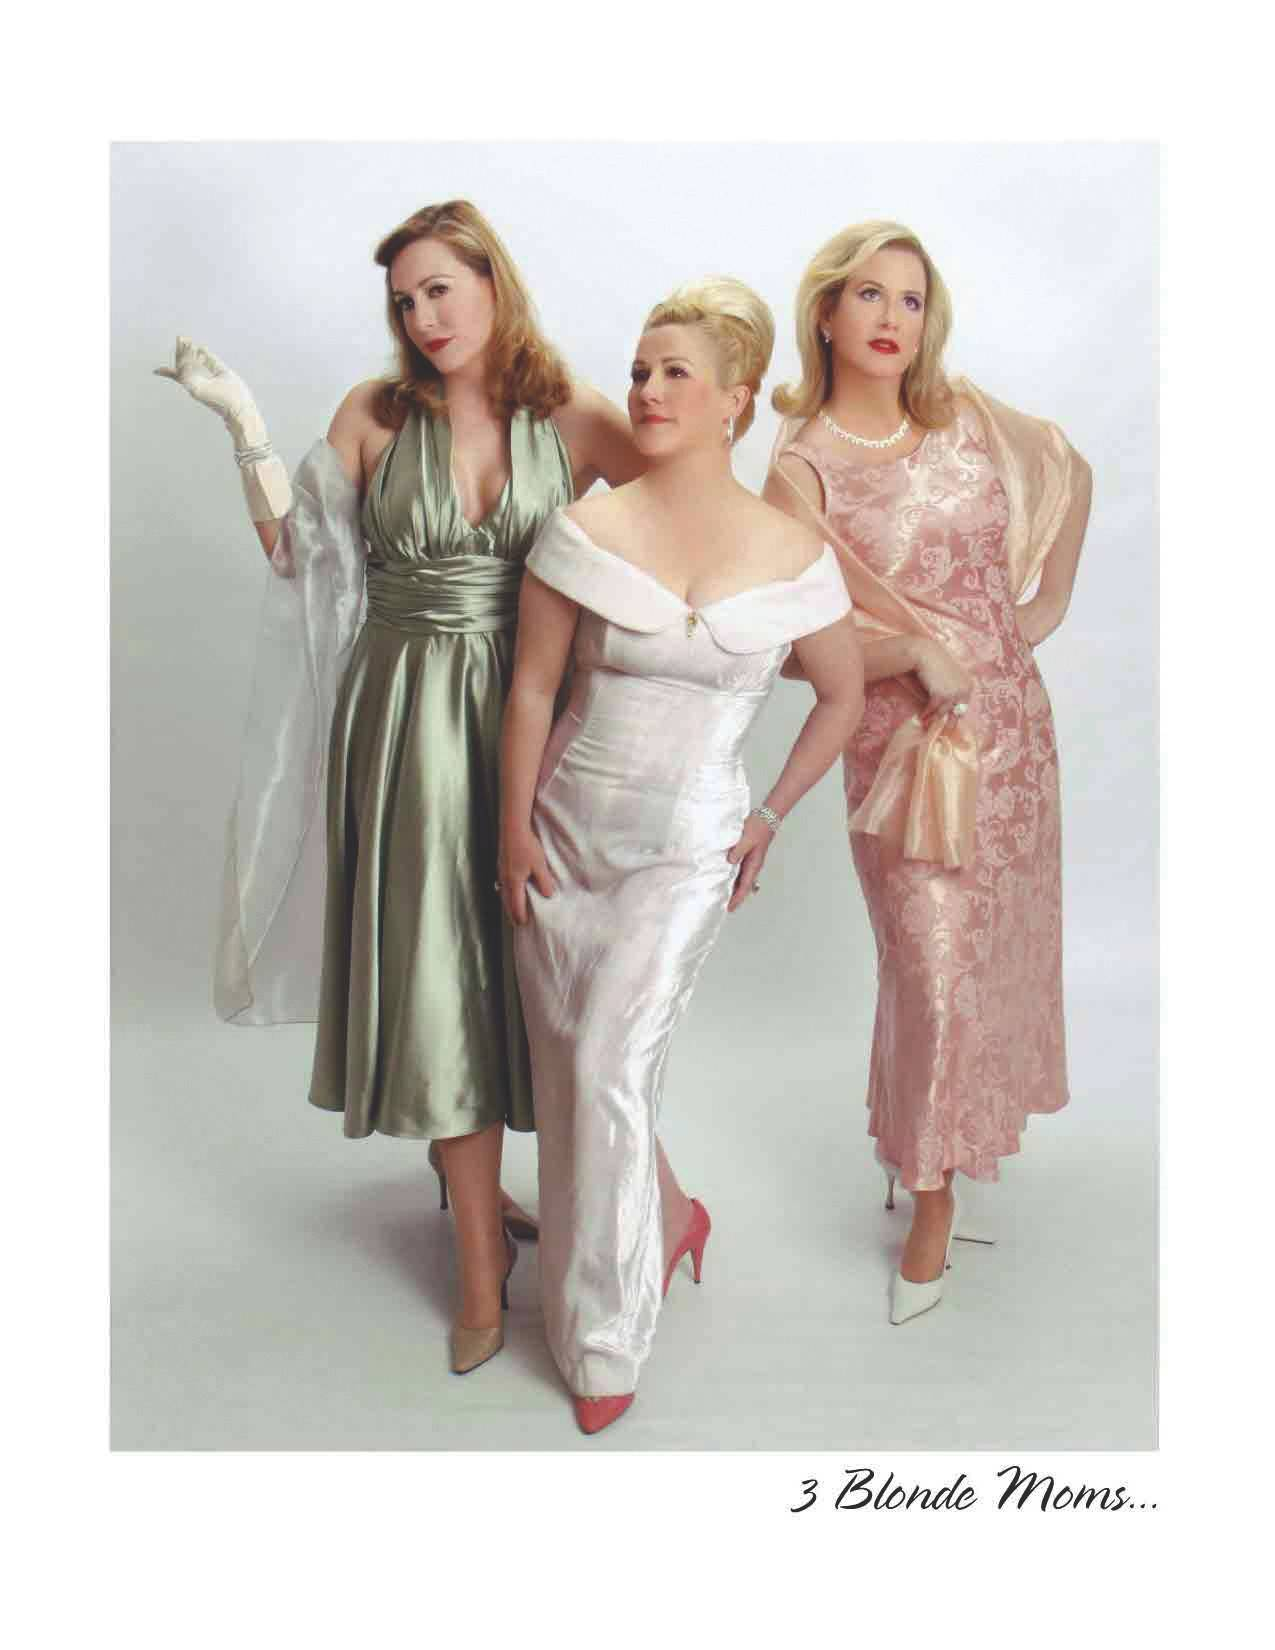 The comedy troupe 3 Blonde Moms performs at the Raue Center for the Arts in Crystal Lake on Friday, April 25.